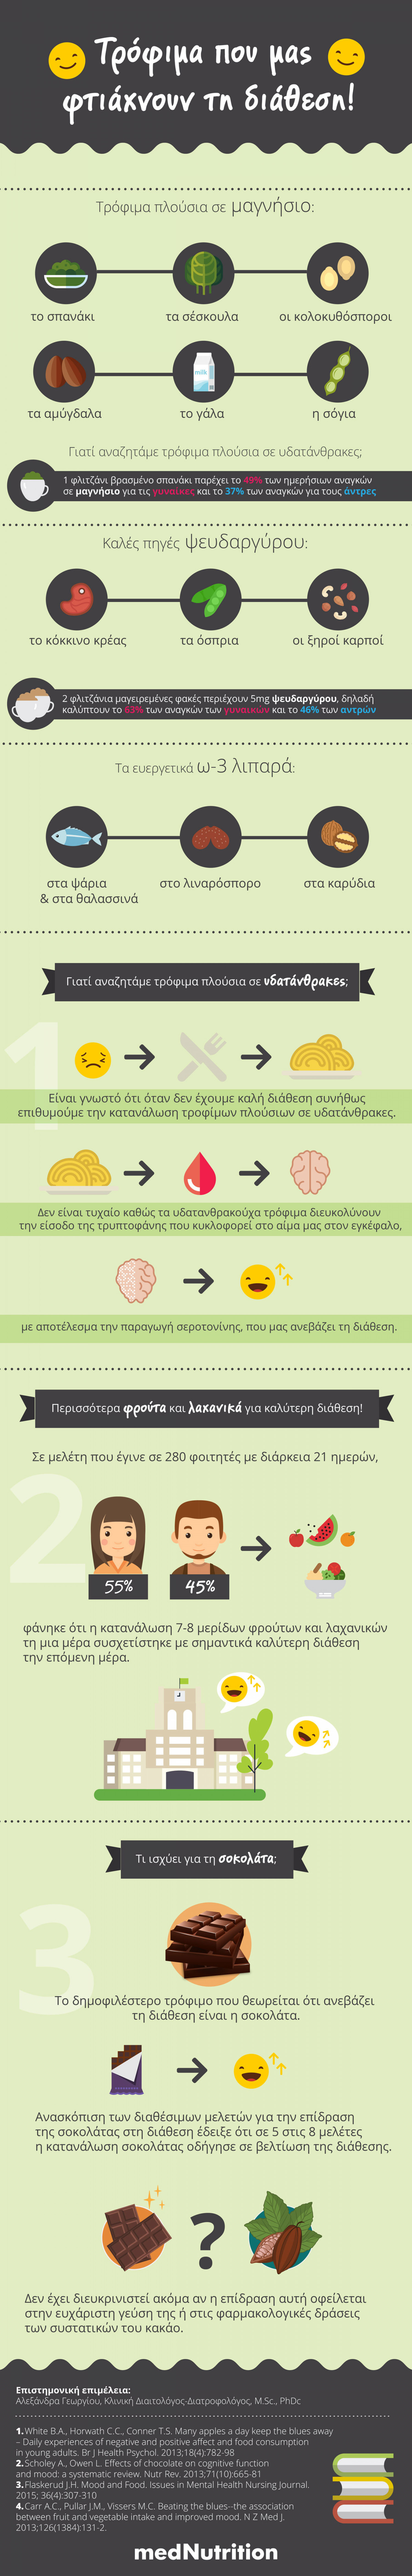 Food for Better Mood! Infographic